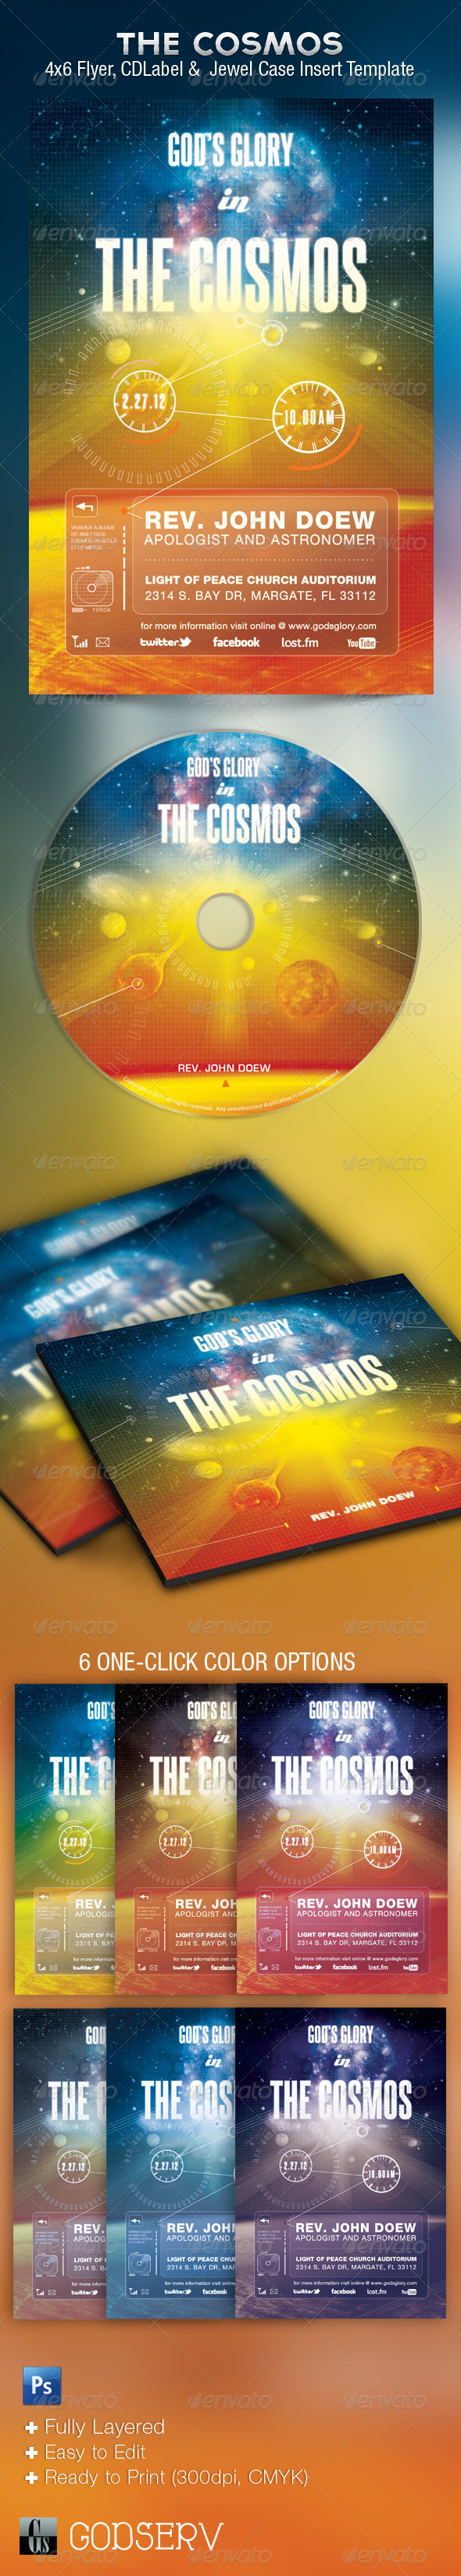 God's Glory In The Cosmos Church Flyer and CD - Church Flyers